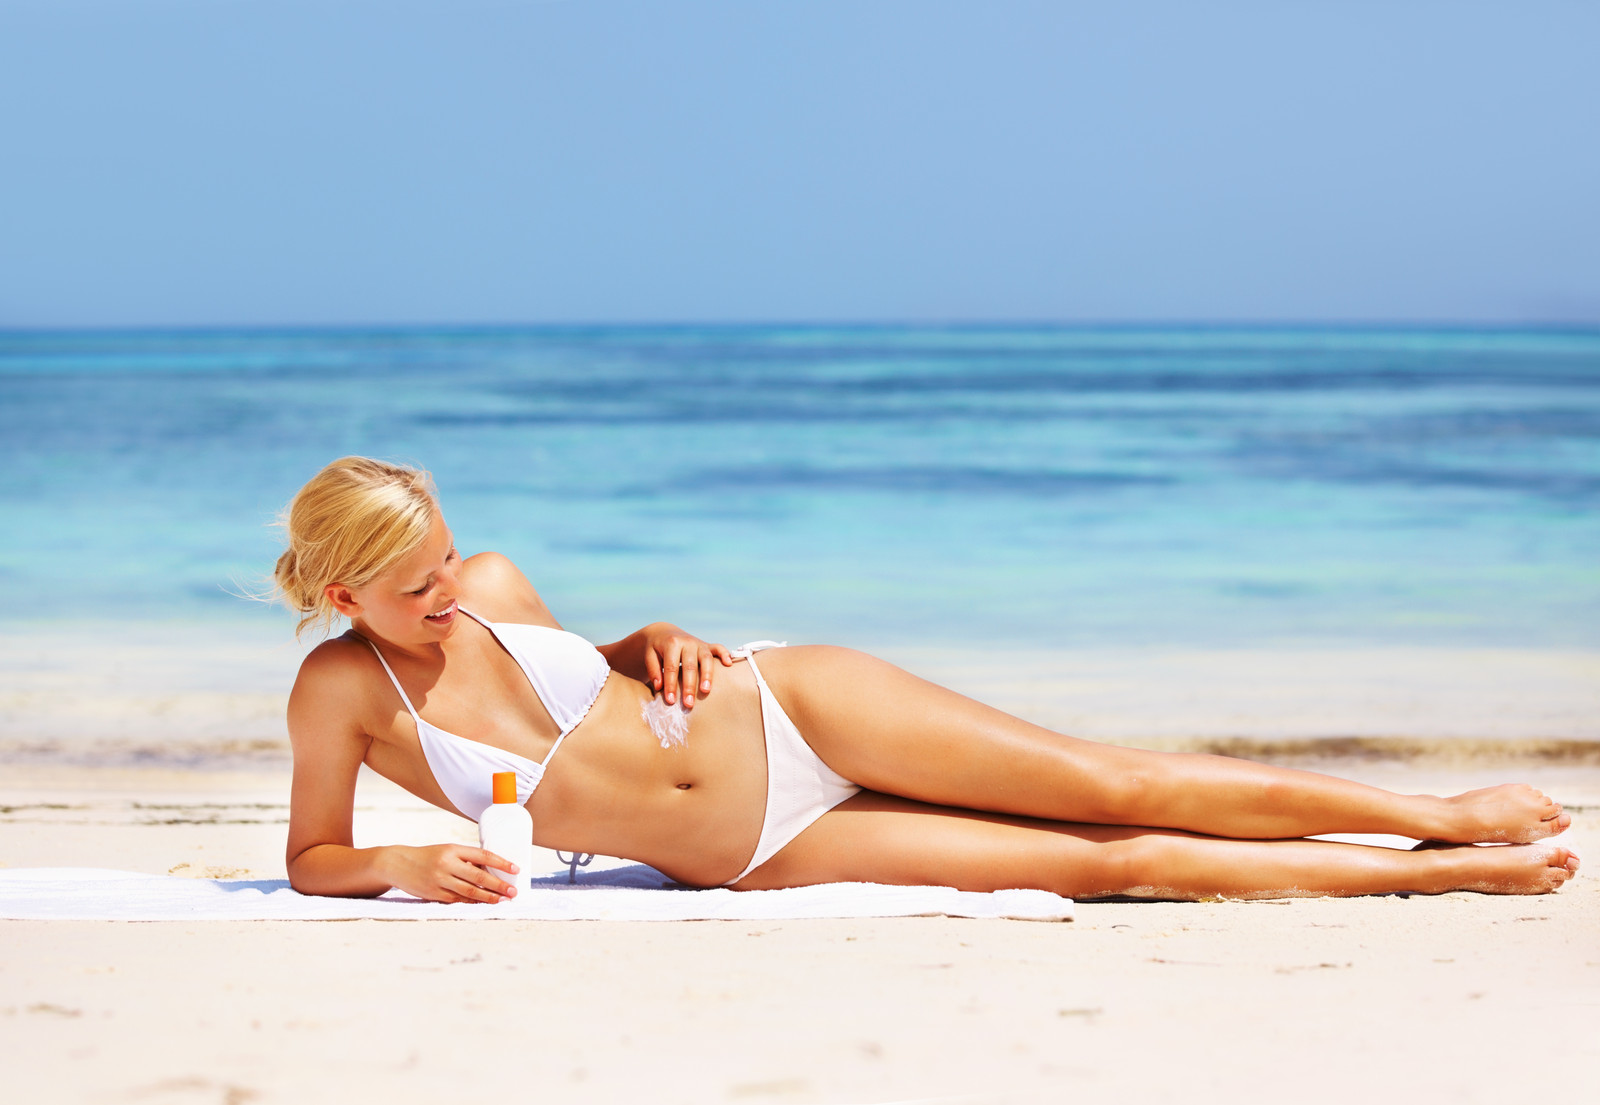 Sunscreen products for sexy image